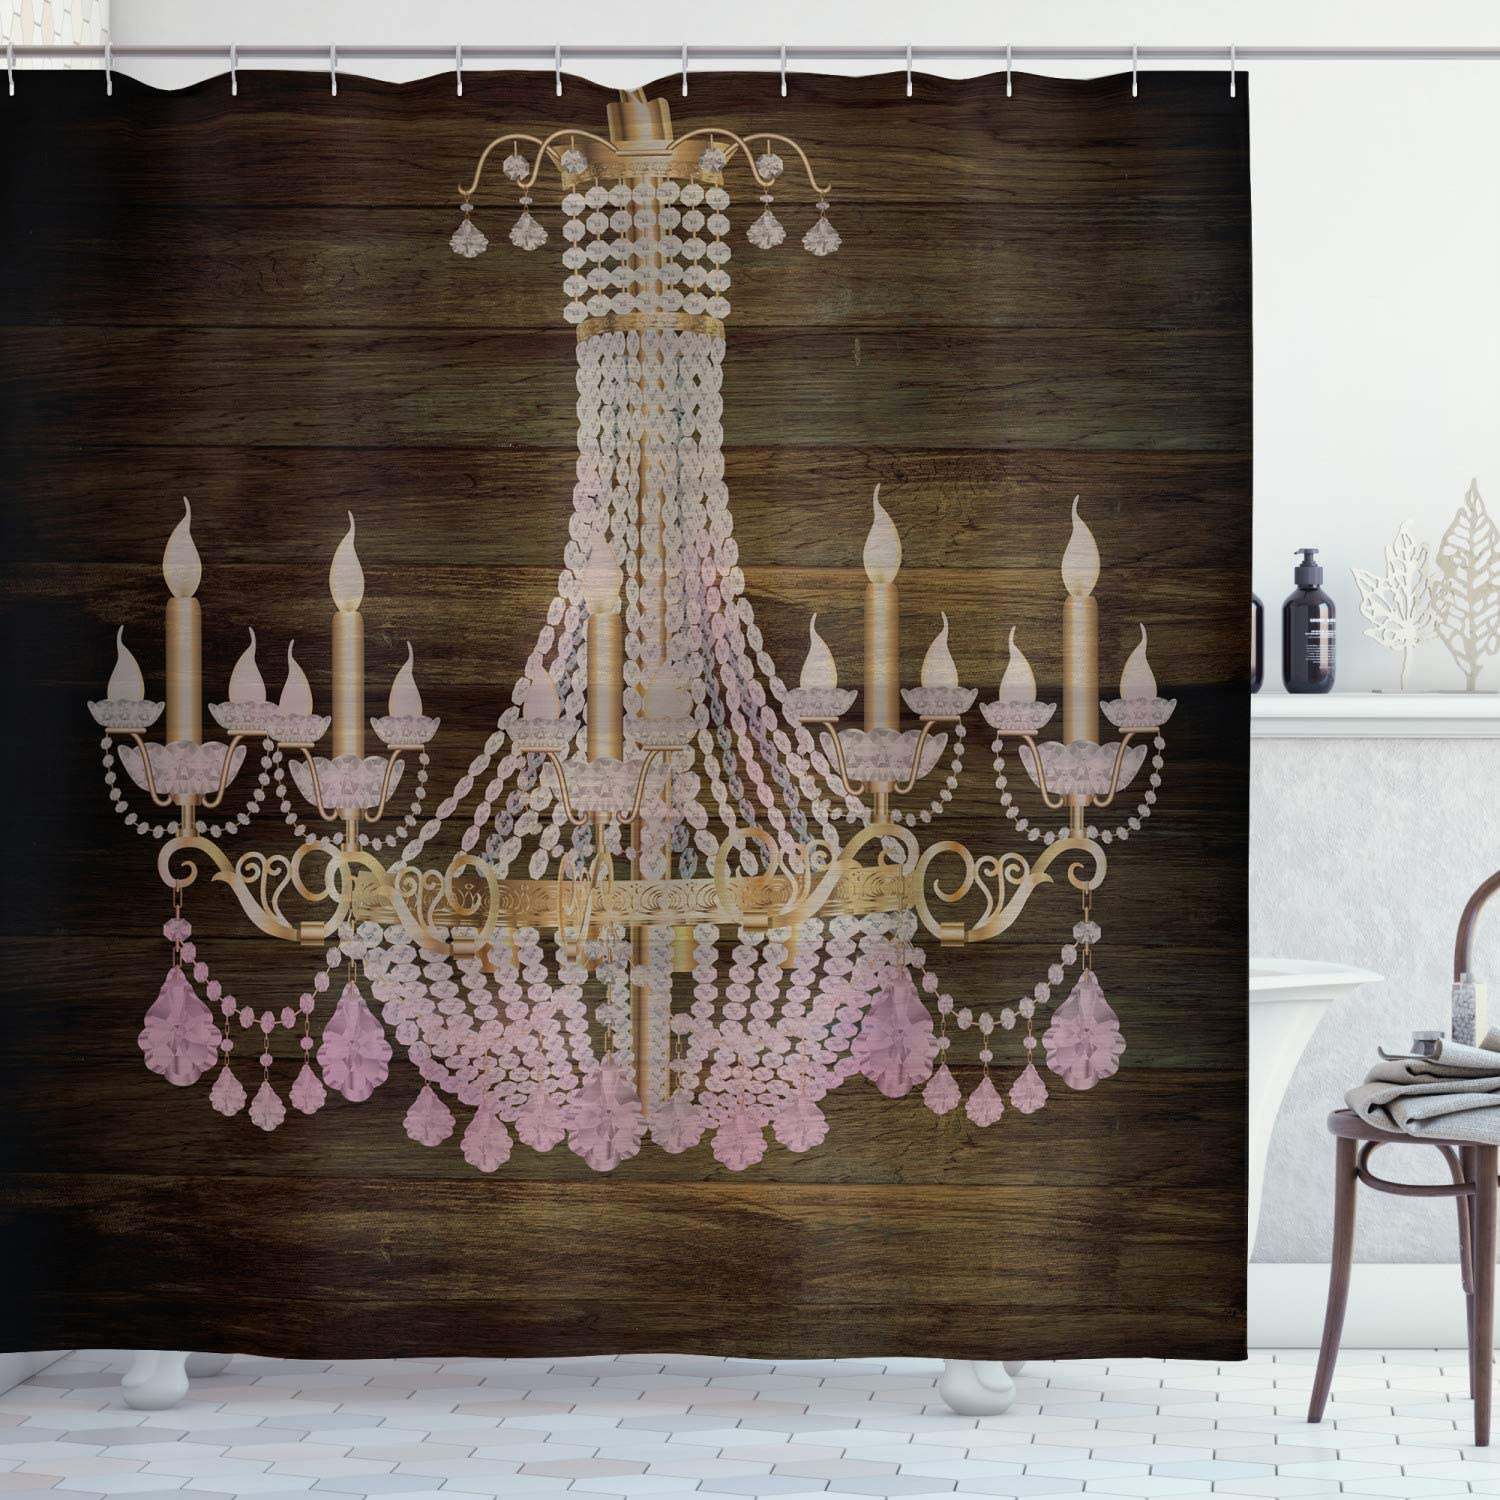 "Ambesonne Rustic Shower Curtain, Wooden Planks Pattern Background Crystal Chandelier Design Vintage Style Country, Cloth Fabric Bathroom Decor Set with Hooks, 70"" Long, Brown Pink"